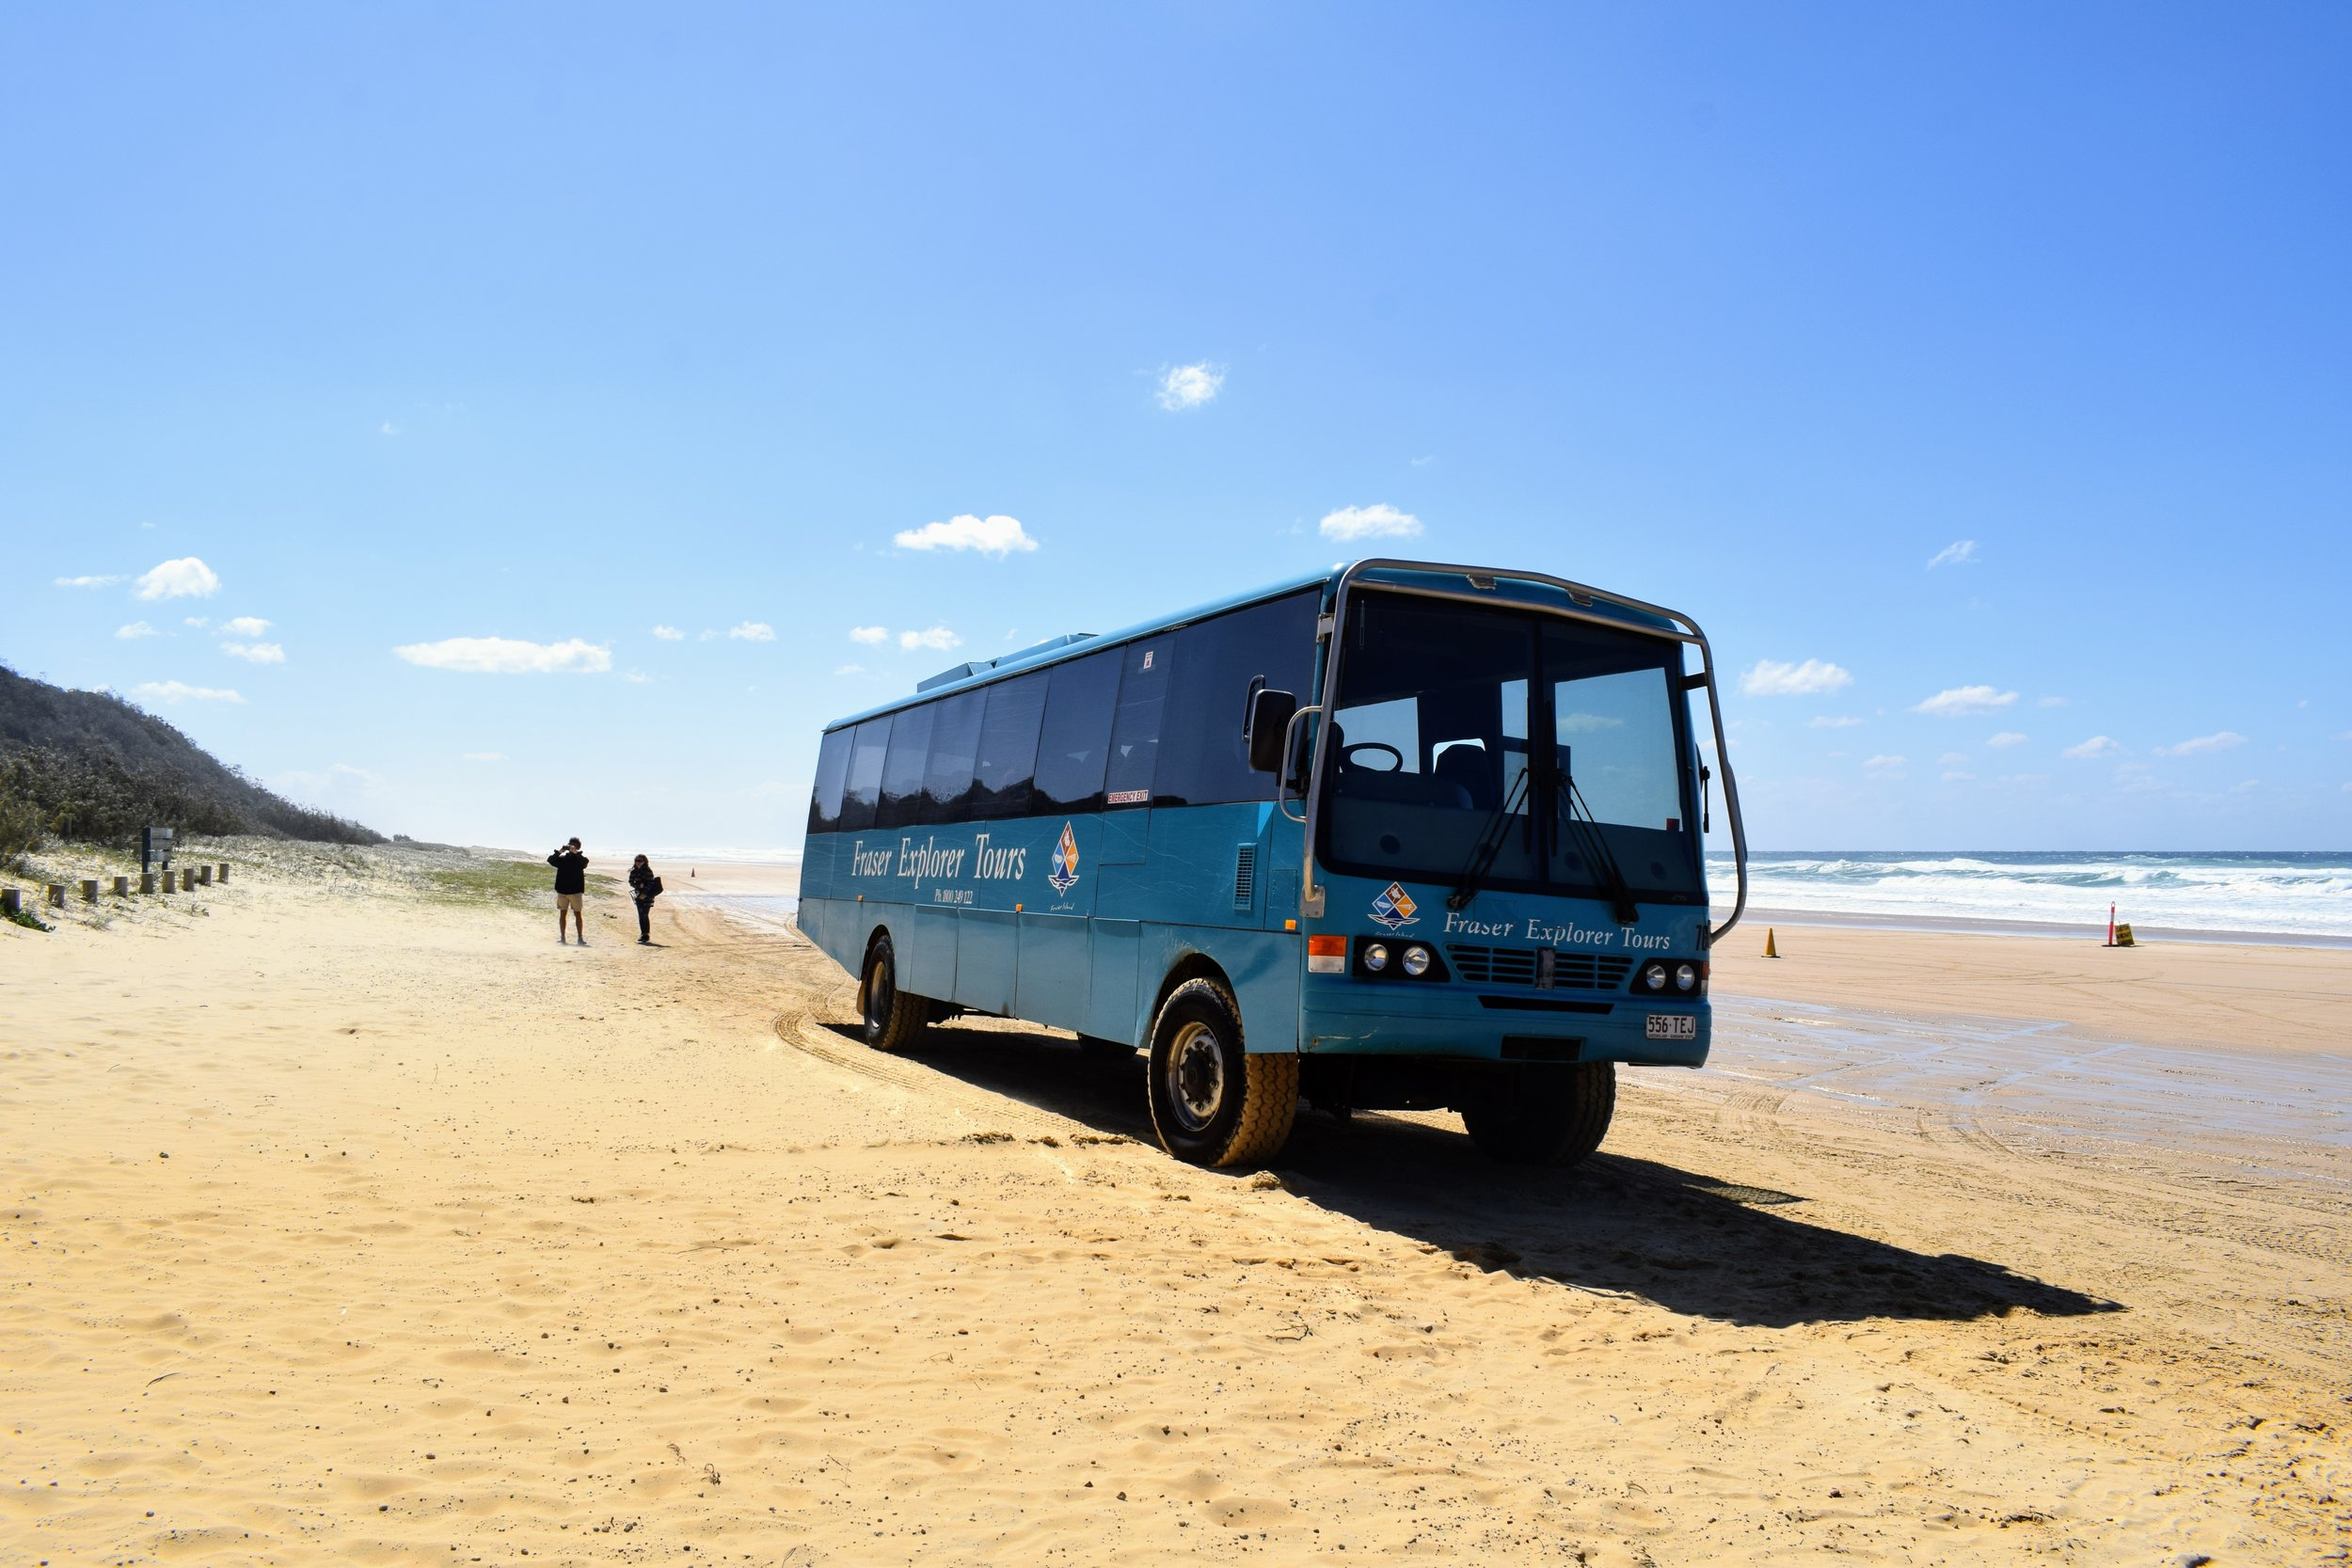 Our tour bus on the sand highway that is 75 Mile Beach.